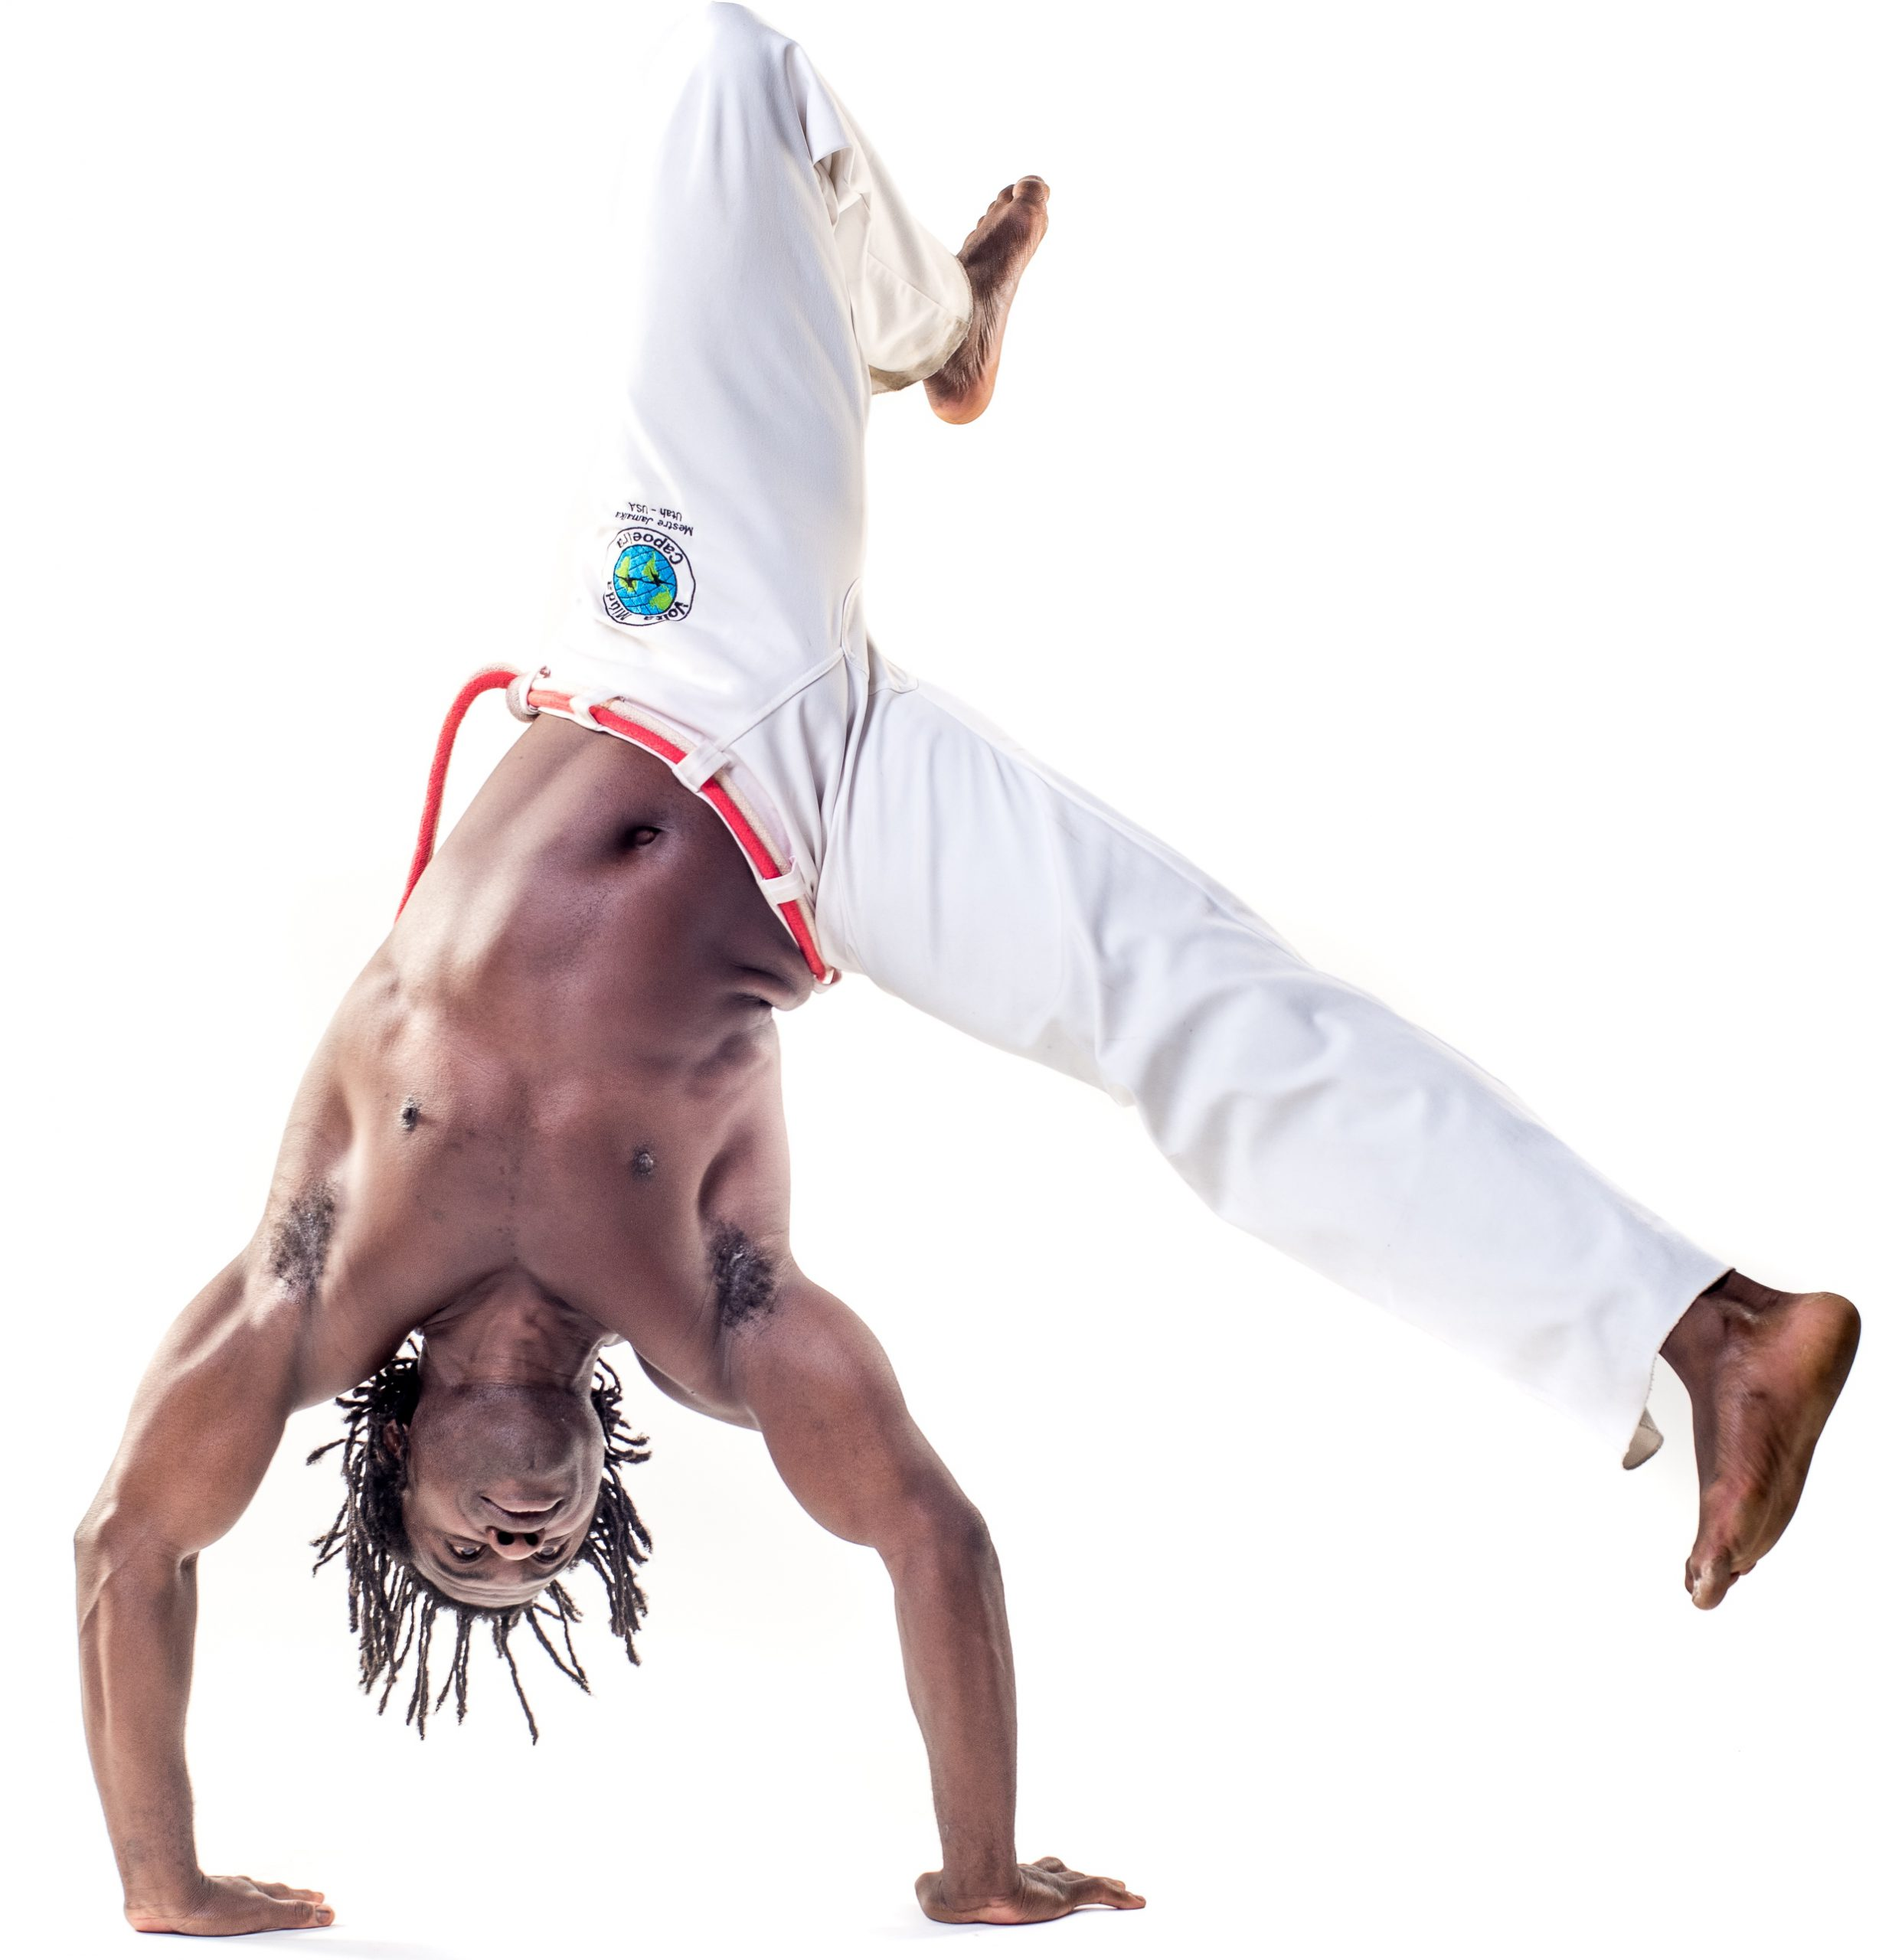 A photo of a shirtless Black man wearing white mans, doing a handstand.